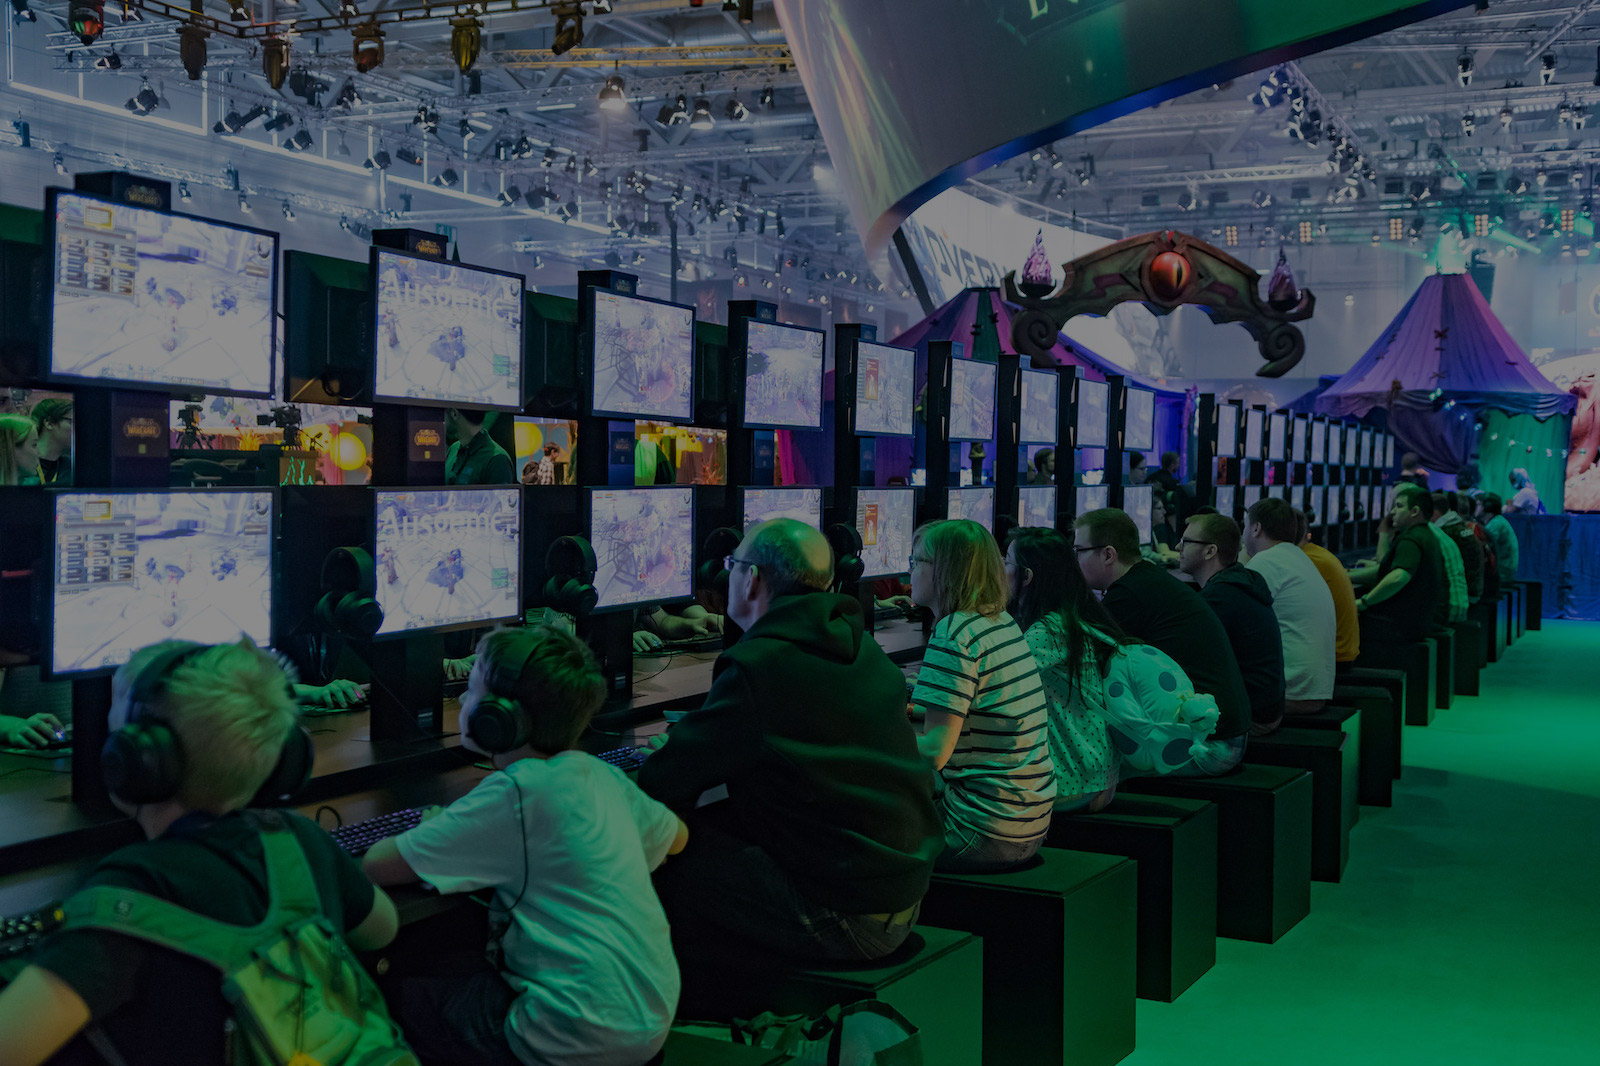 Ad agosto si terrà gamescom 2019, la fiera di riferimento per il video gaming